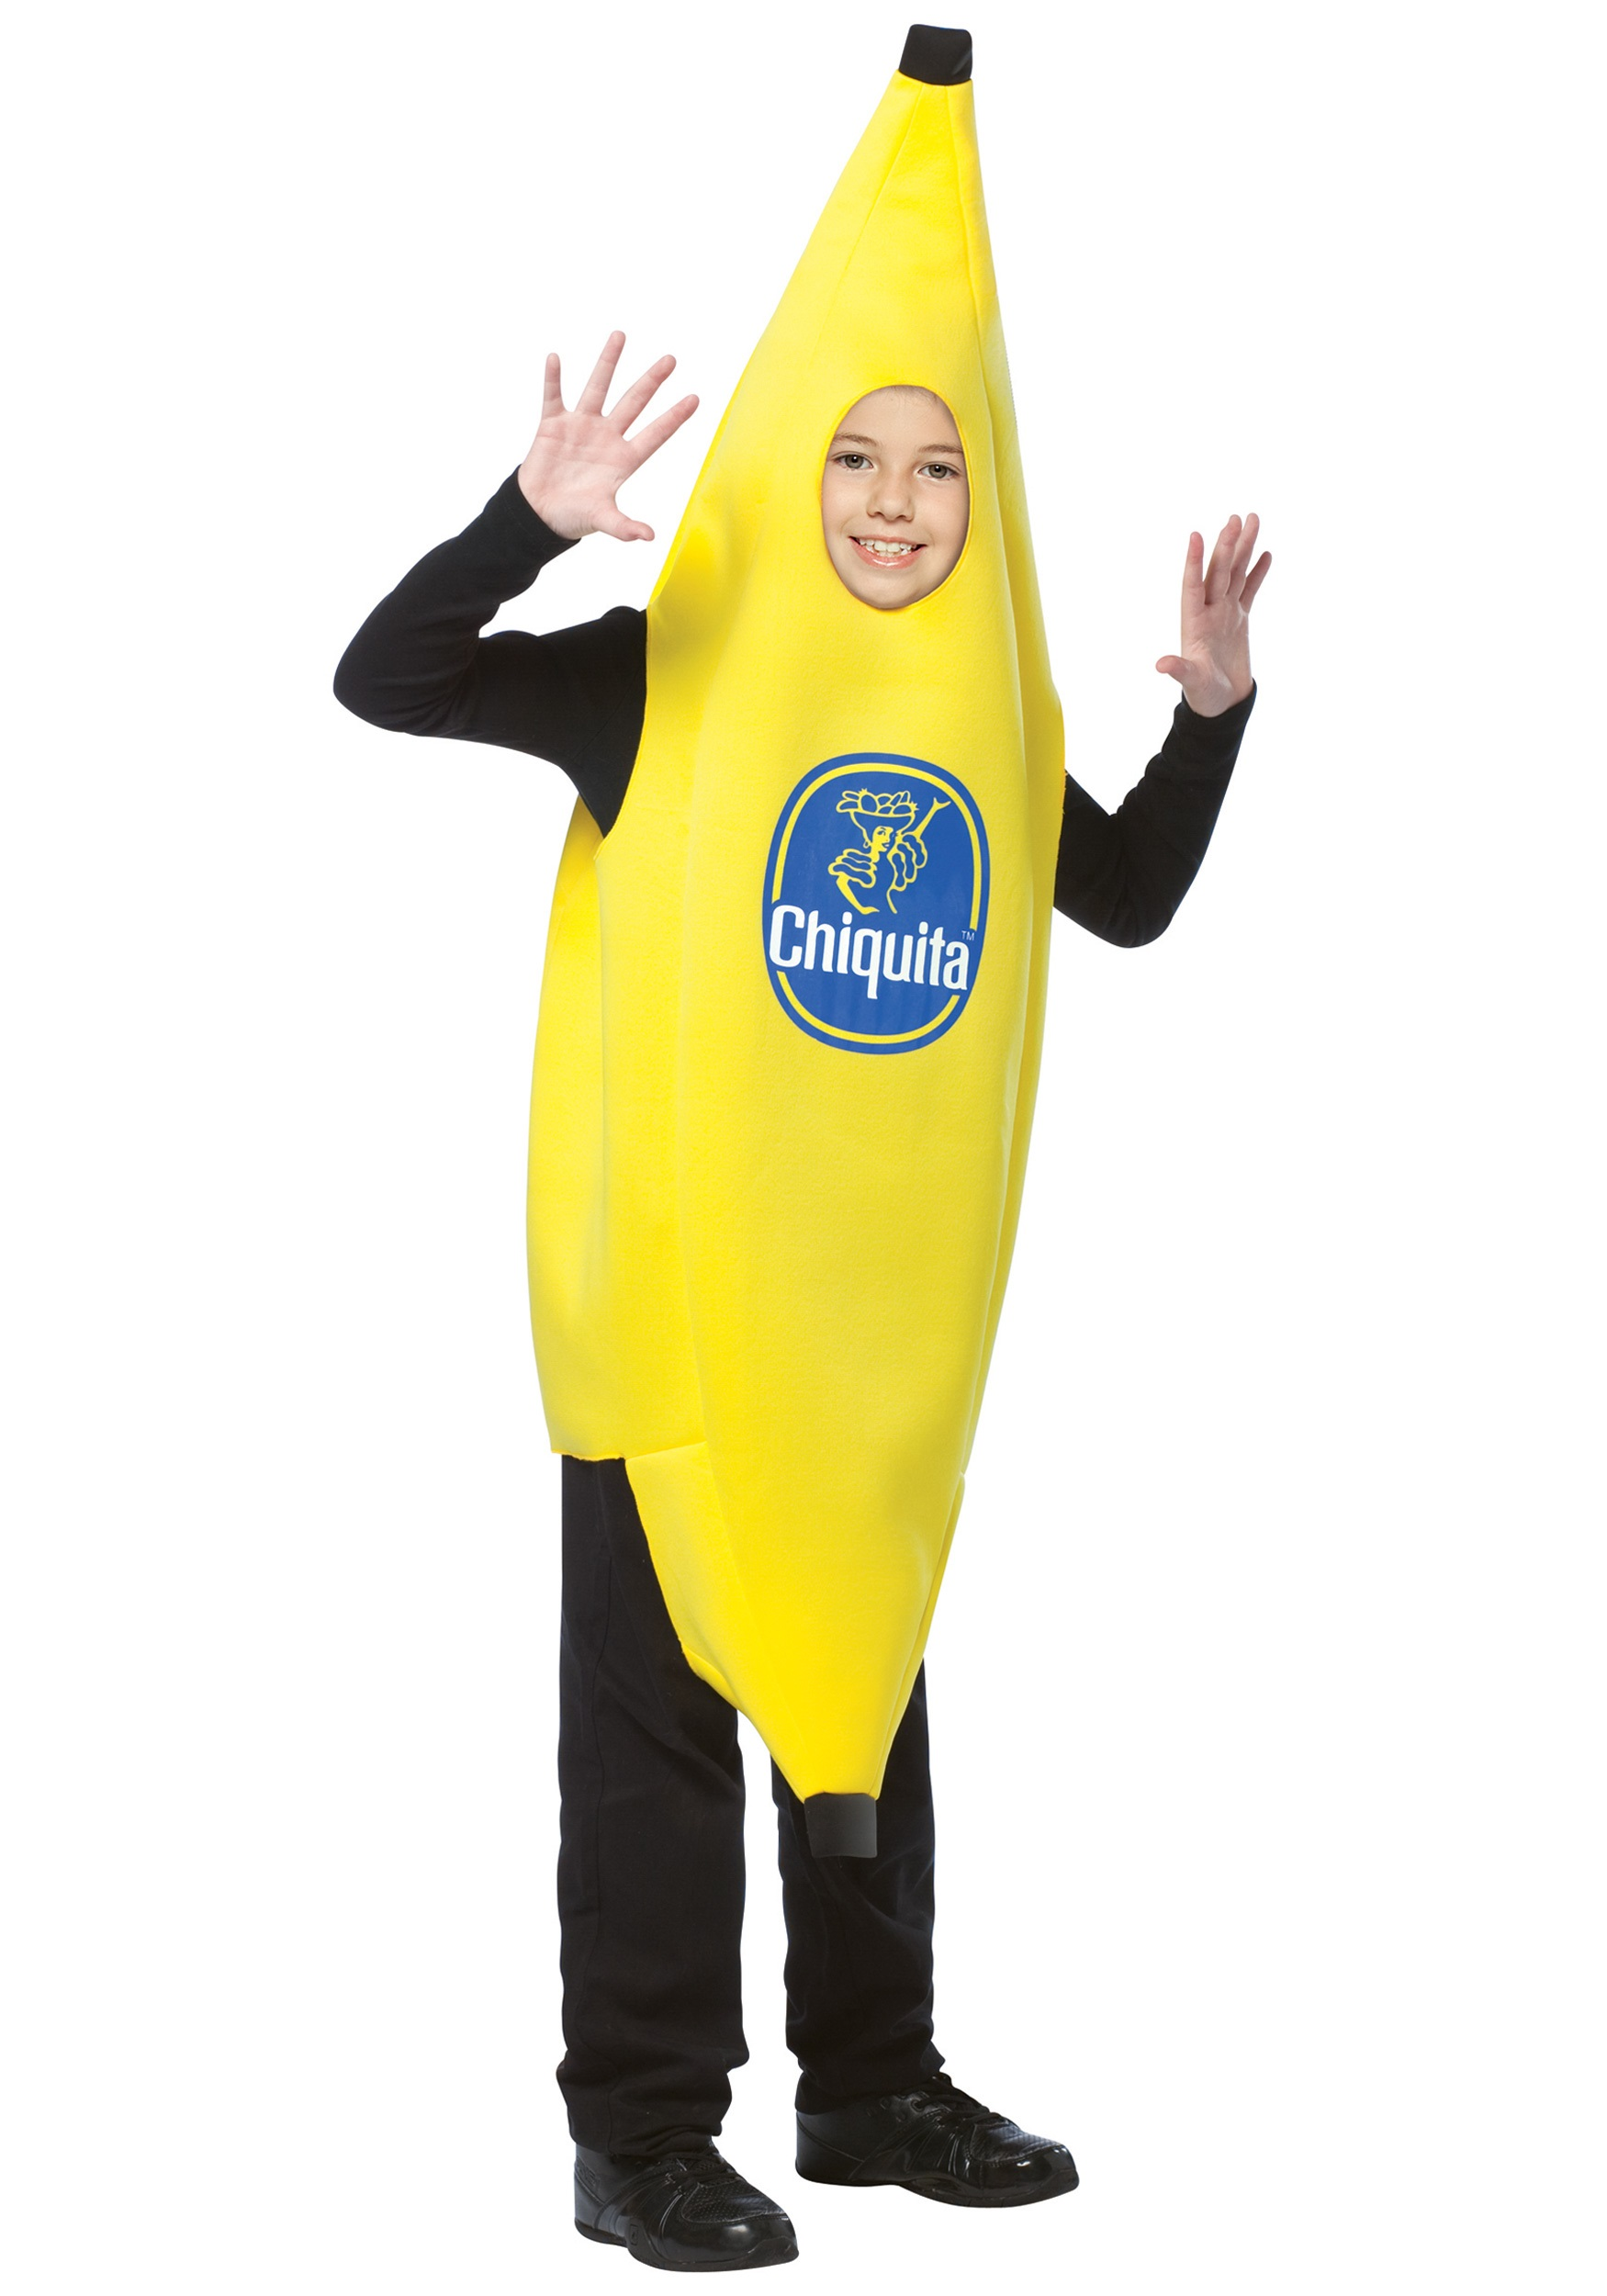 Child Chiquita Banana Costume  sc 1 st  Halloween Costumes & Child Chiquita Banana Costume - Halloween Costumes